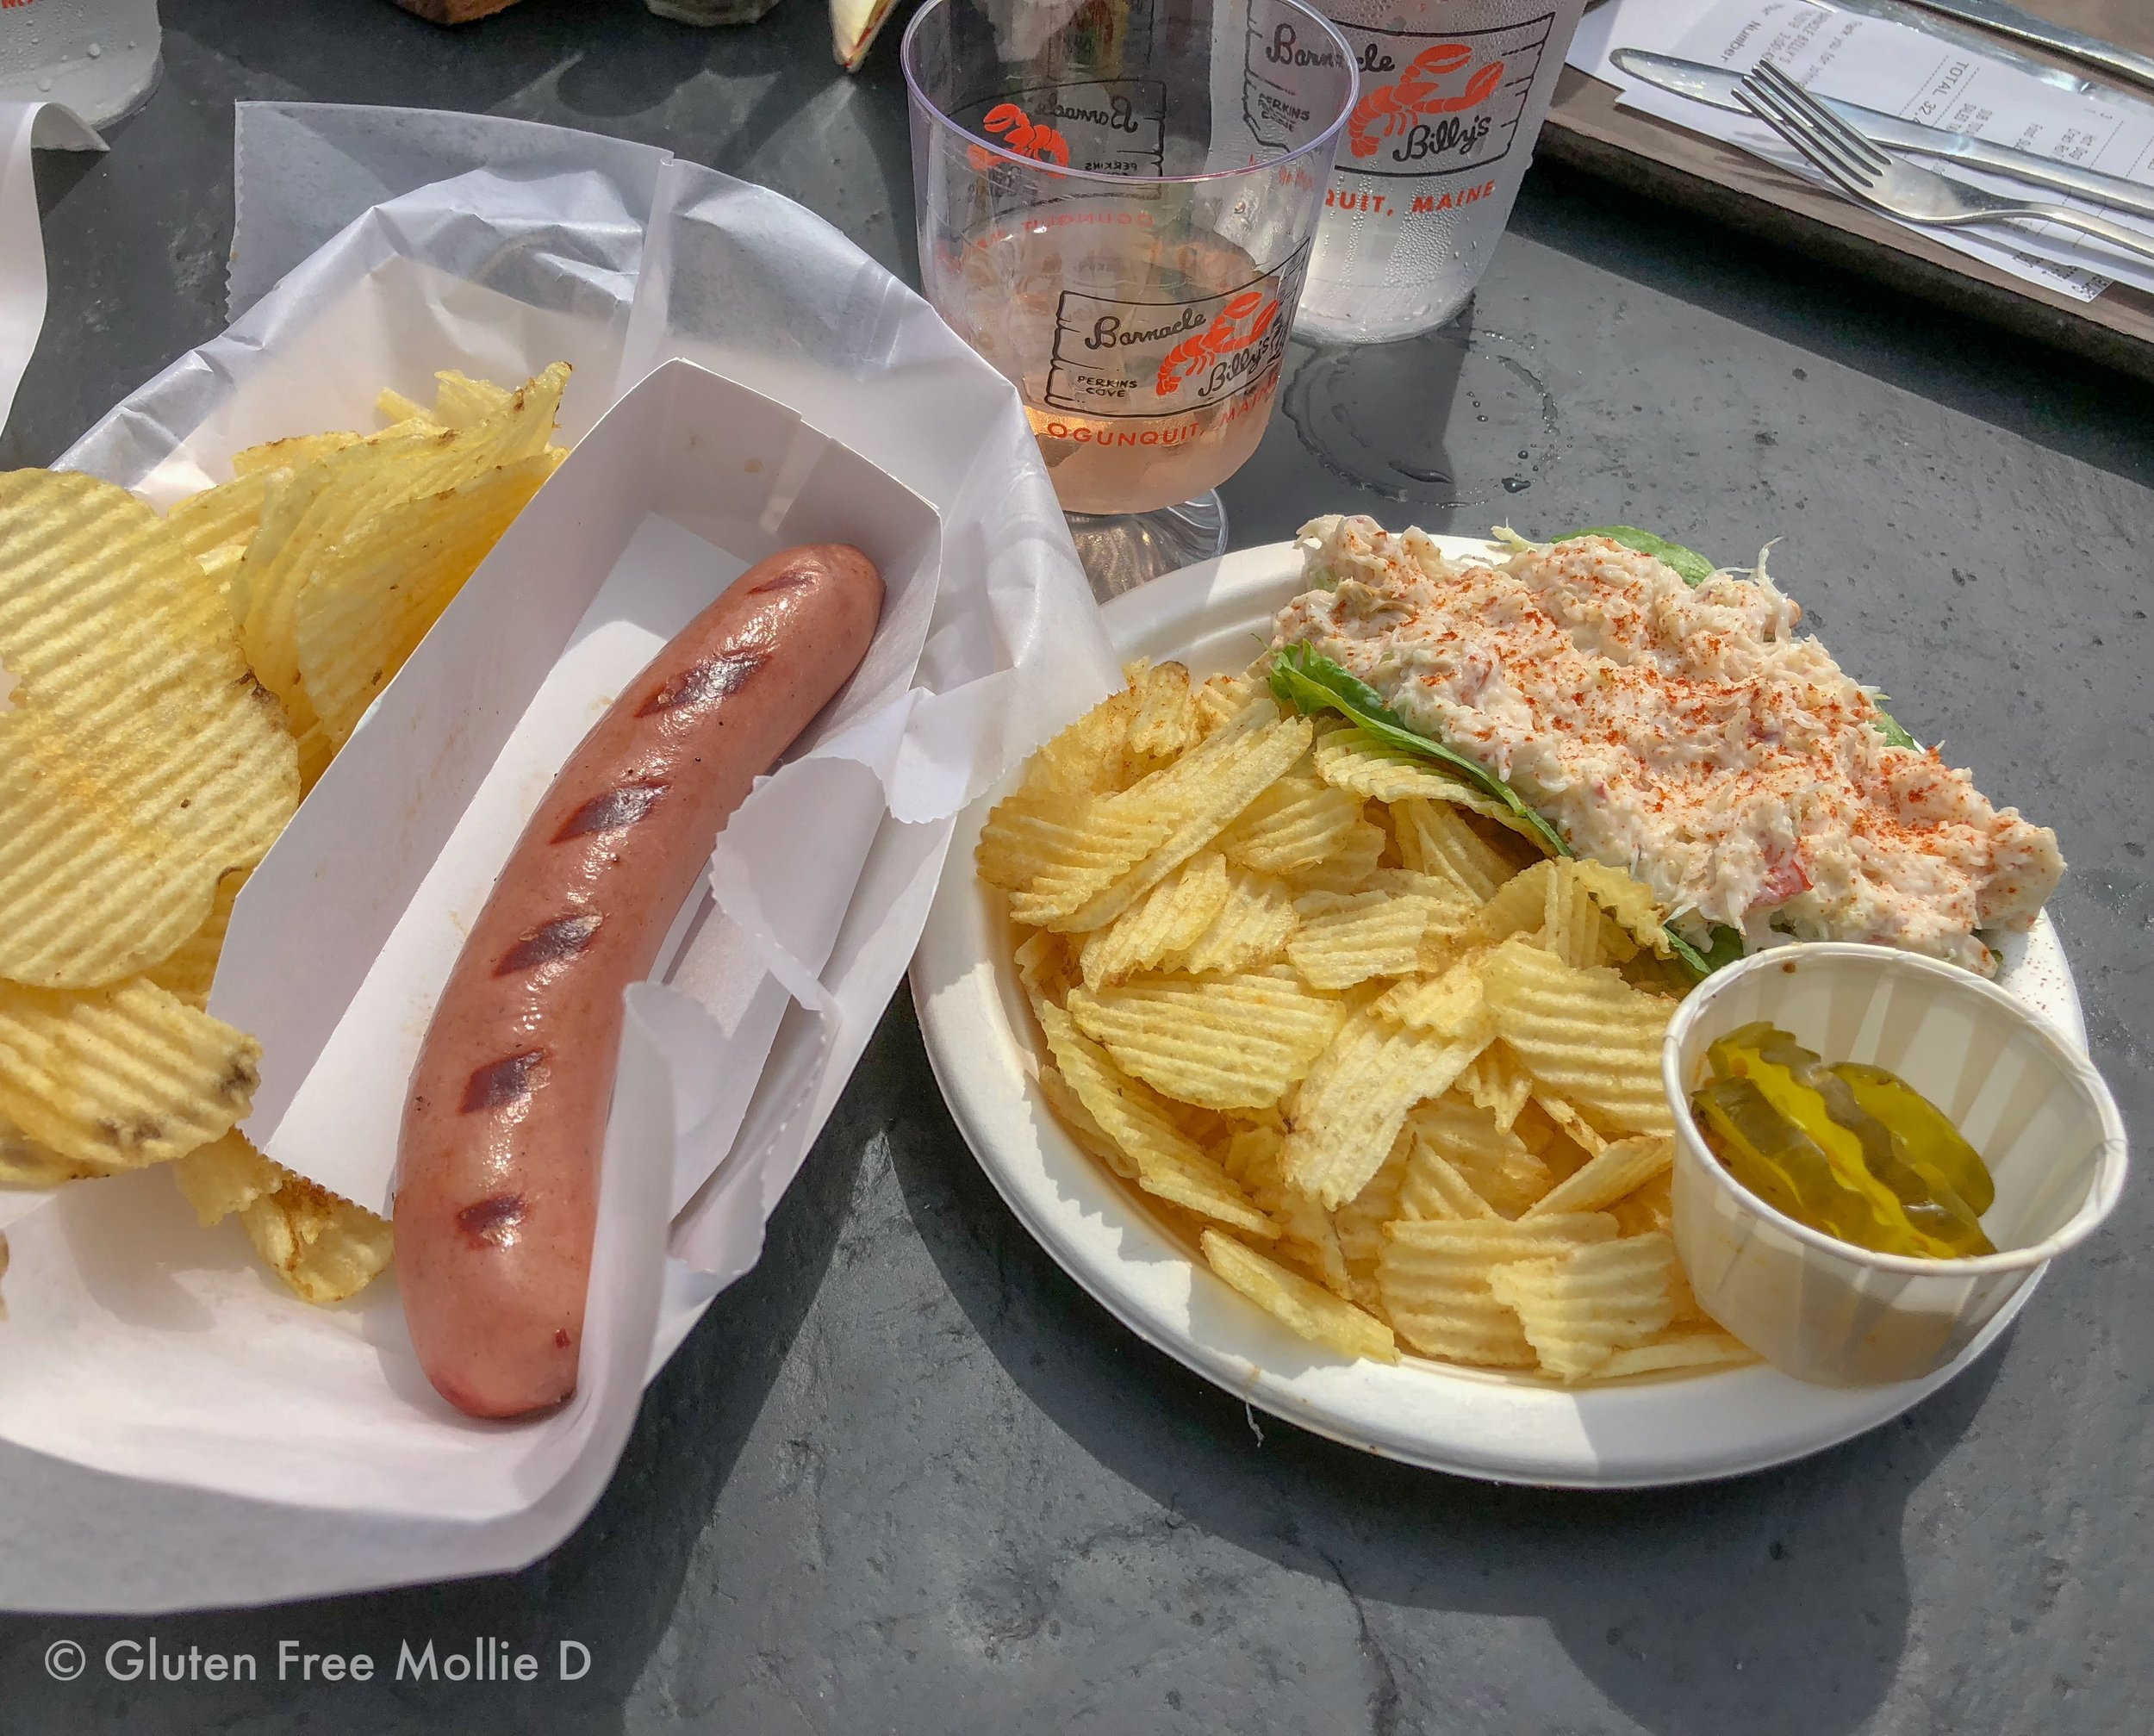 My order always includes a bun-less hot dog, and this time I added a crab roll (no roll).